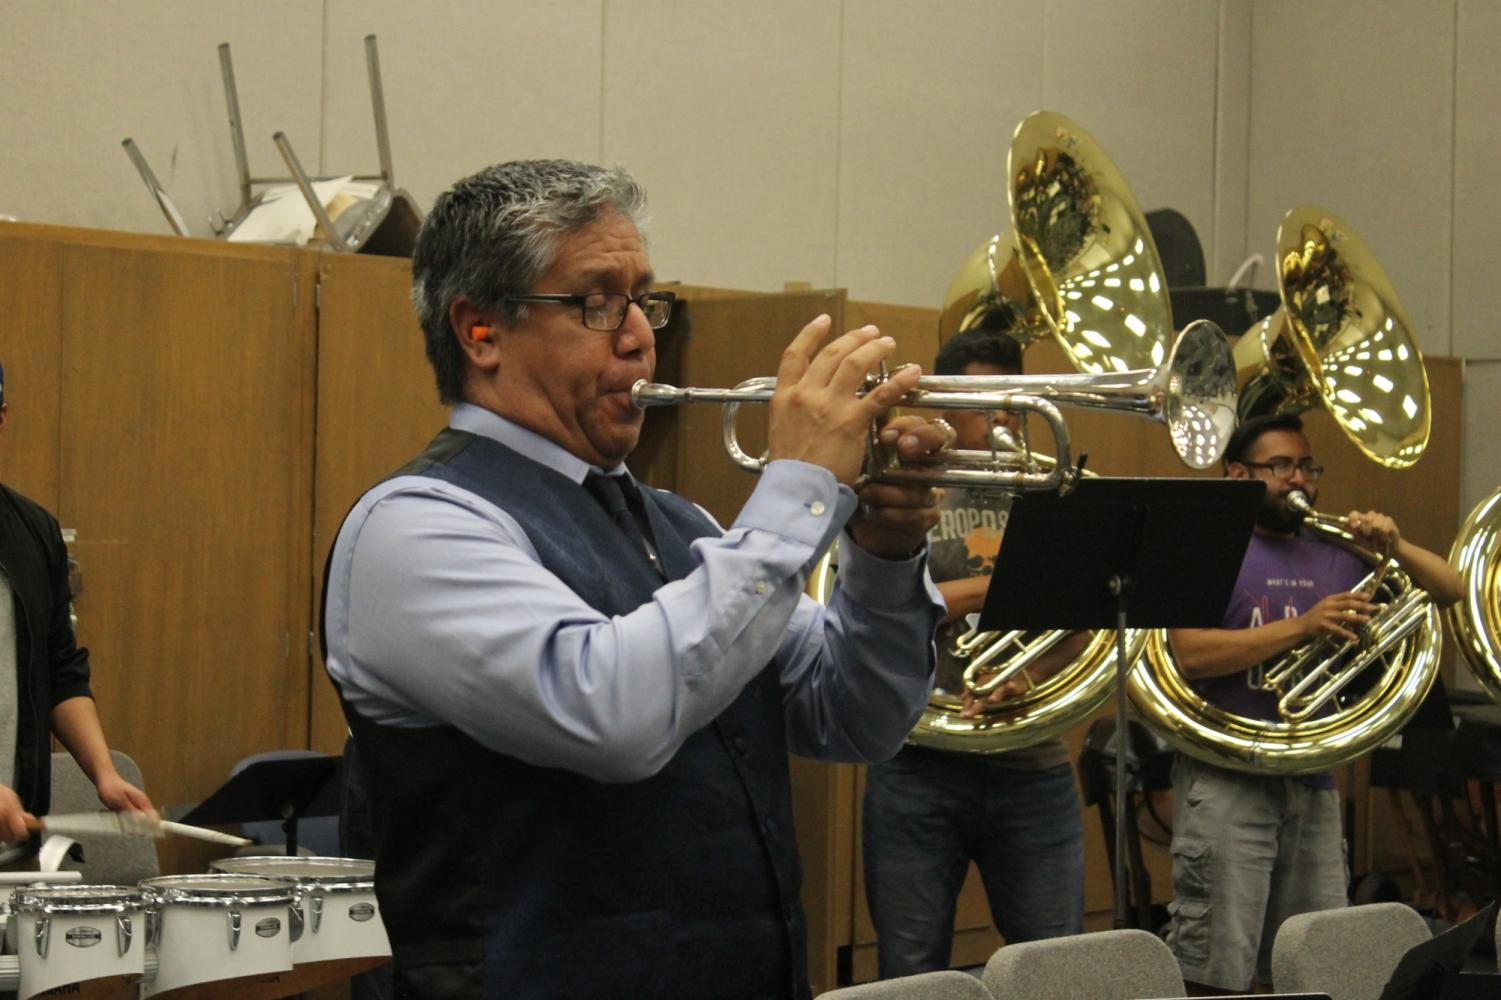 Dr. David Betancourt plays with the Pep Band during rehearsal